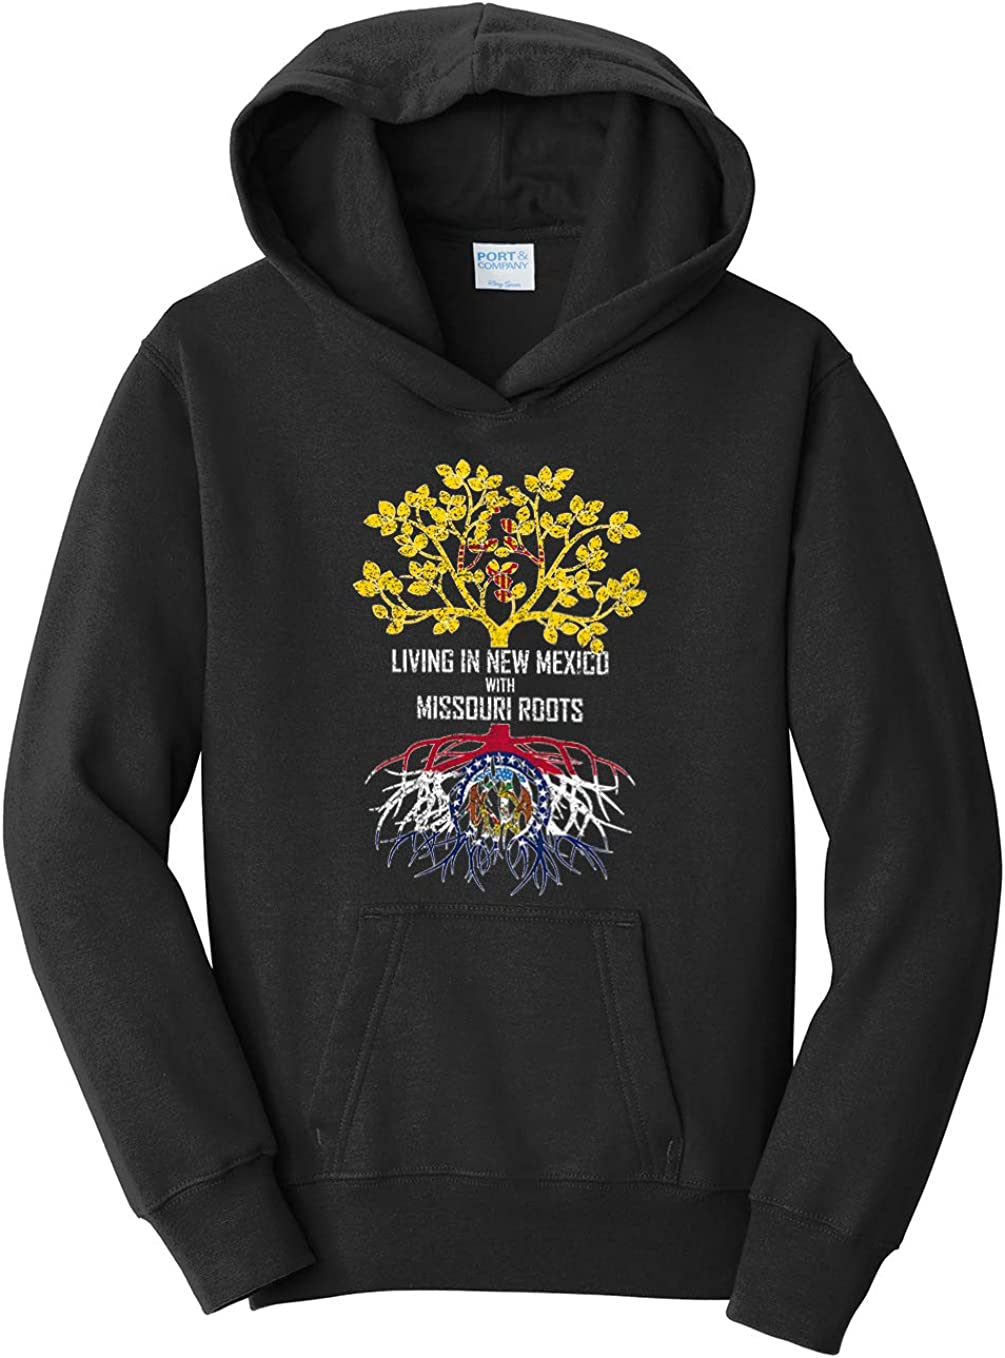 Tenacitee Girls Living in New Mexico with Missouri Roots Hooded Sweatshirt